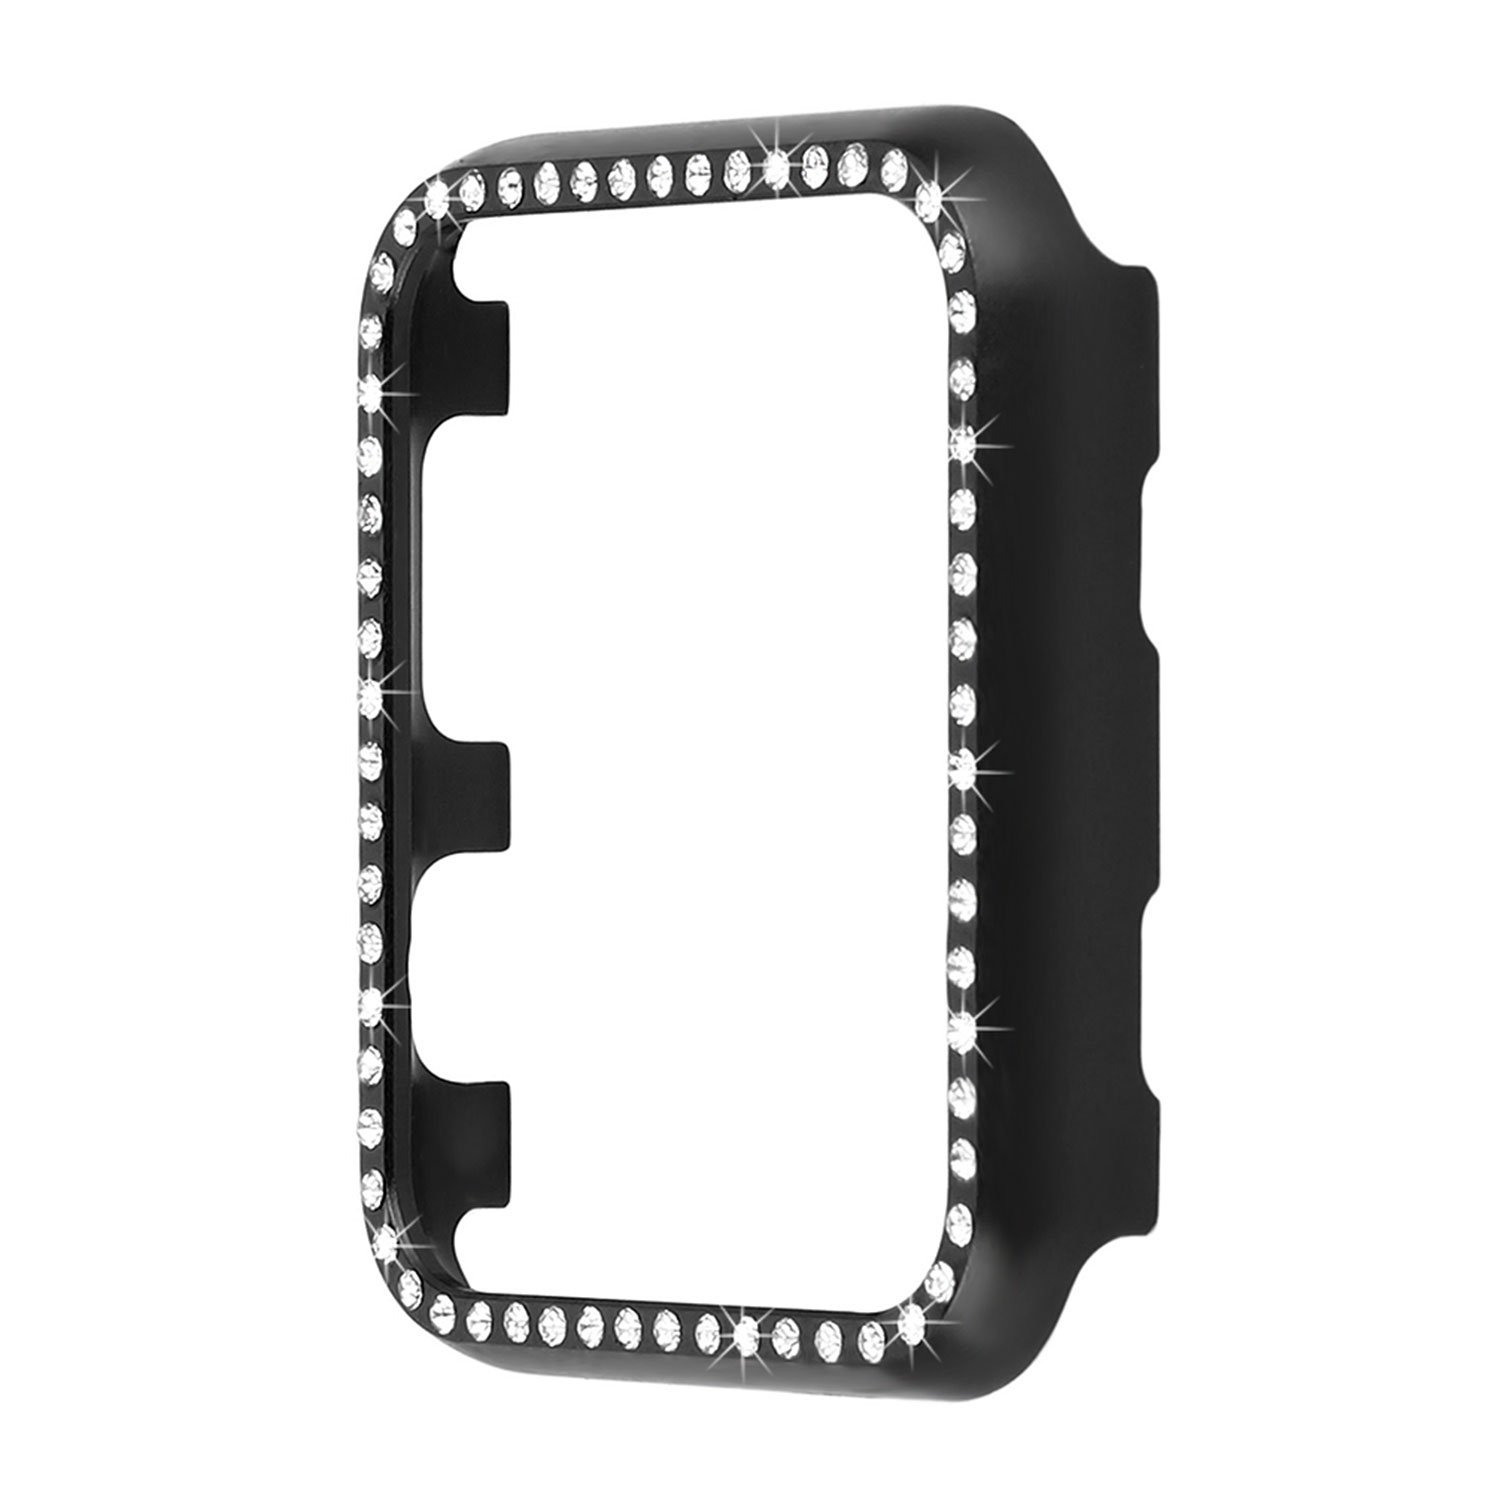 Compatible for Apple Watch 44mm Case Series 4 Bling, Women Girls Ladies Diamond Rhinestones Glitter Metal Watch Frame Cover Protective Shell Bumper Watch Case for 44mm iWatch SE Series 5/6 - Black